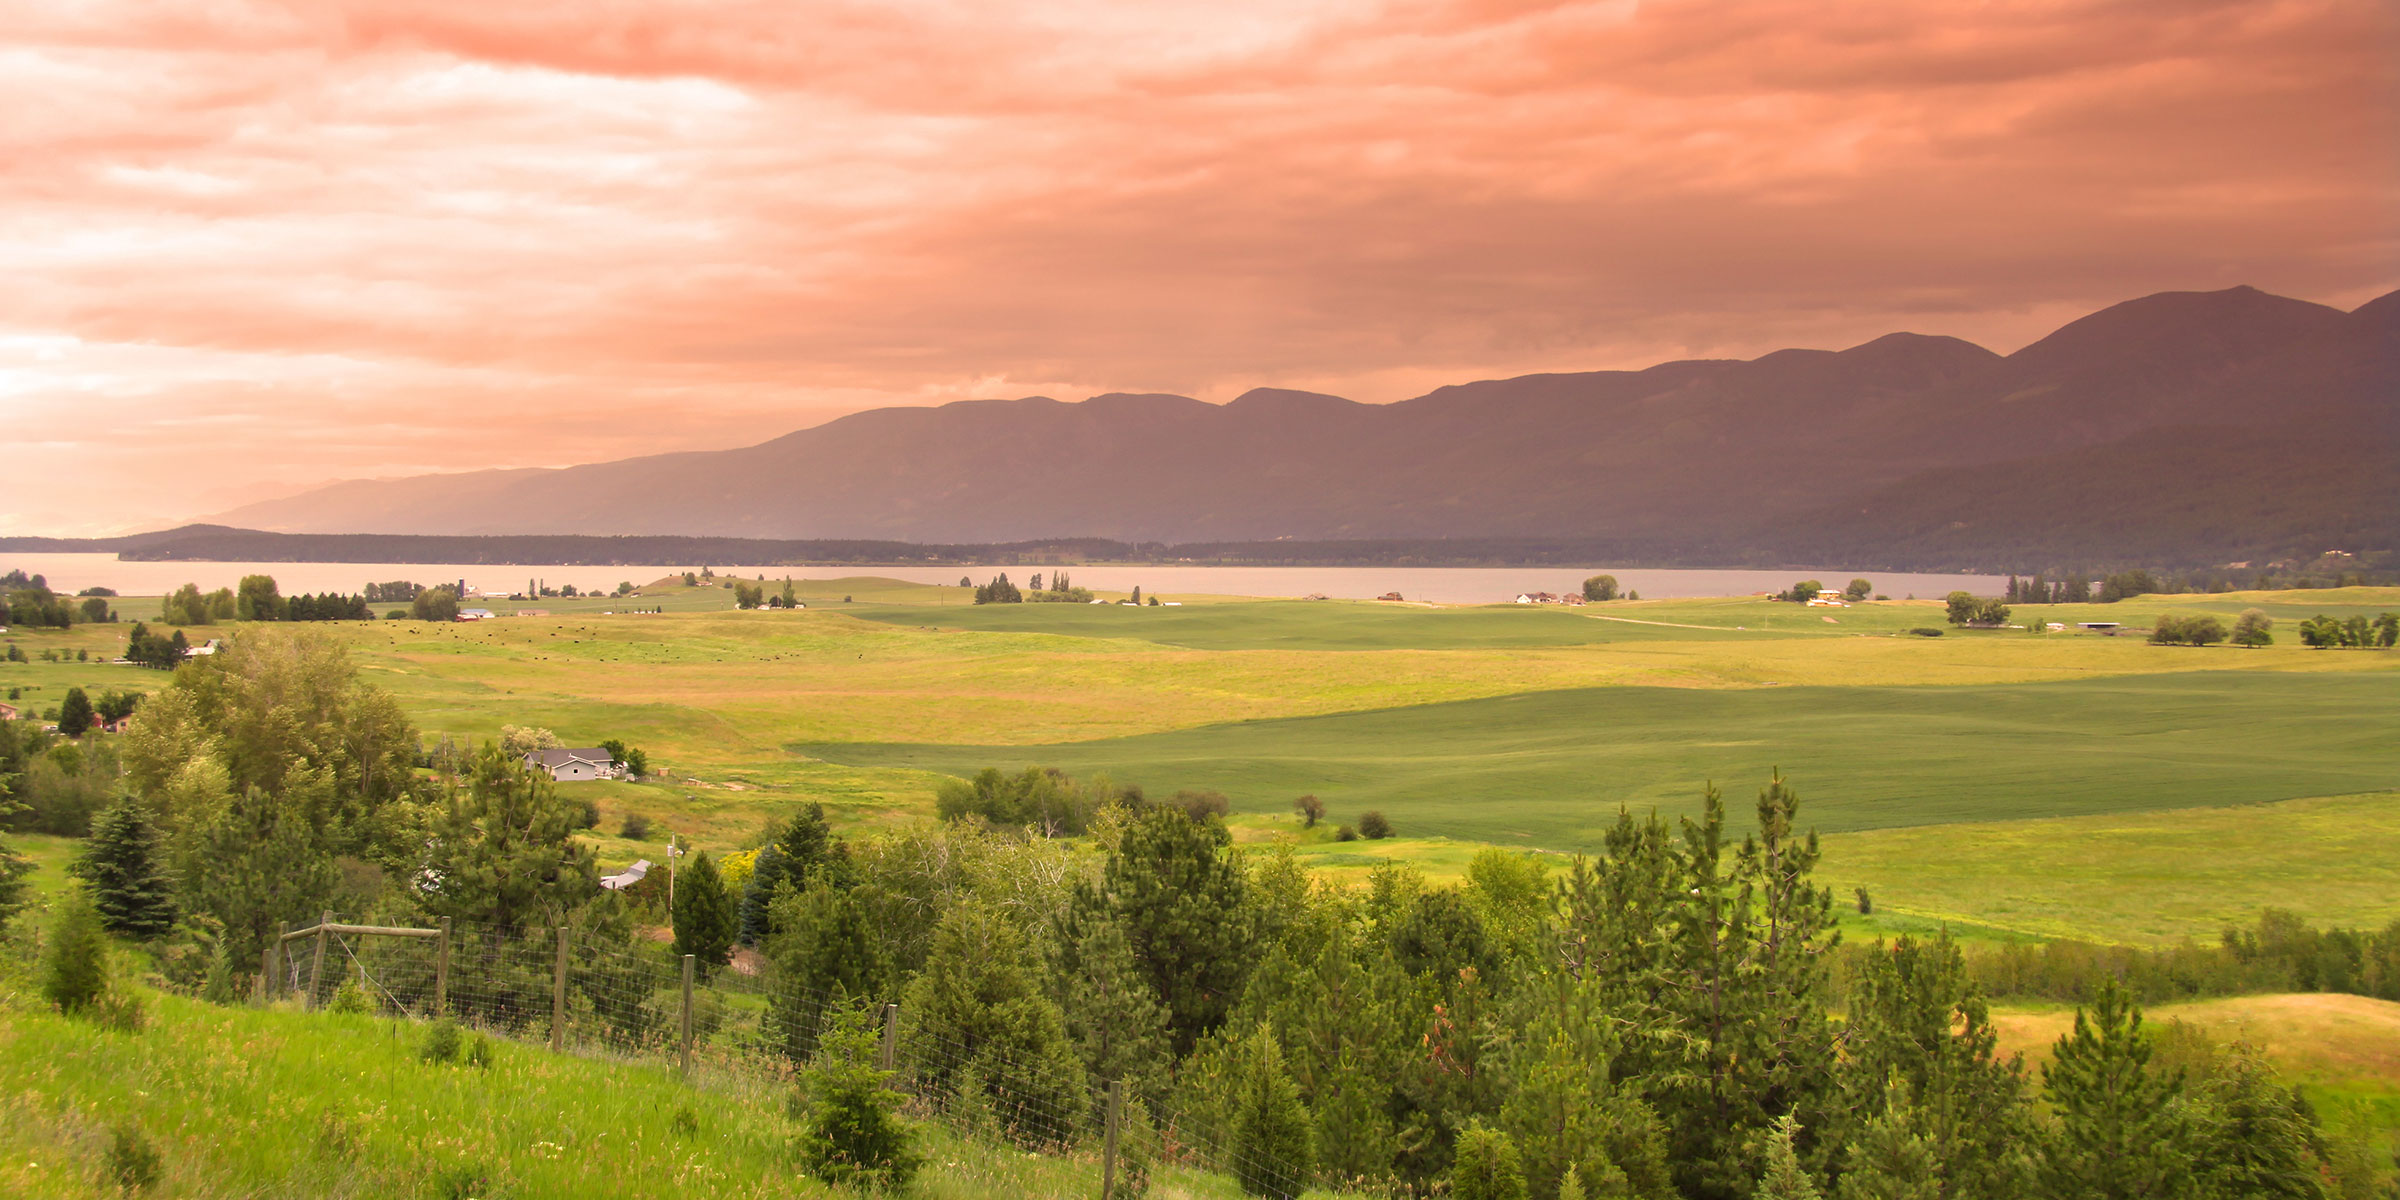 Flathead Valley / Flathead Lake at sunset